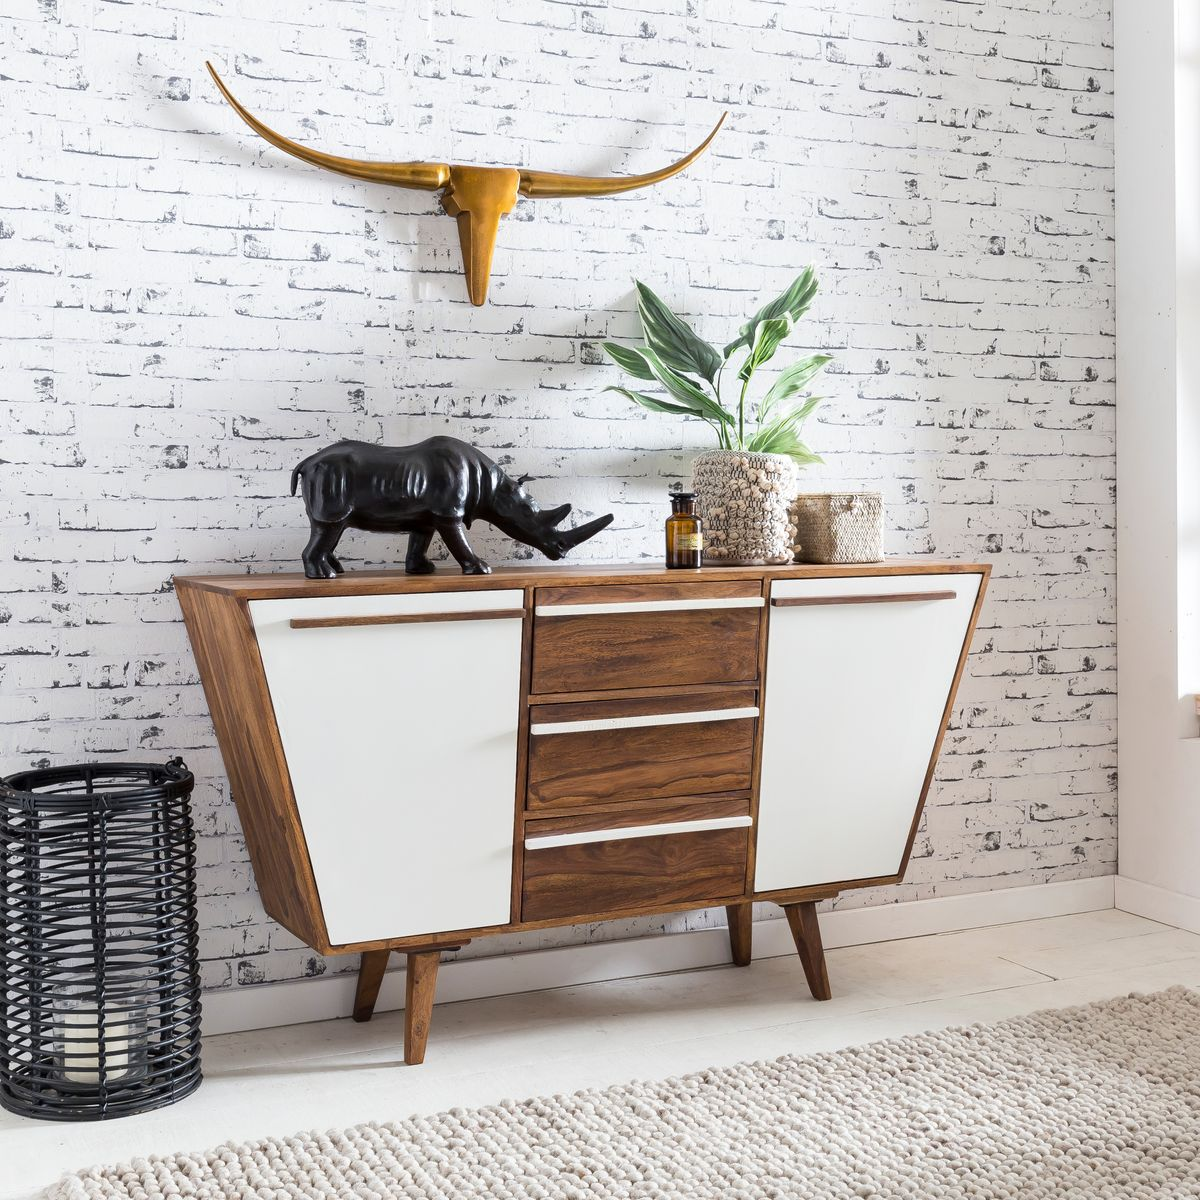 Caracole Modern Streamline Moderne Sideboard The Curving Forms Das ...